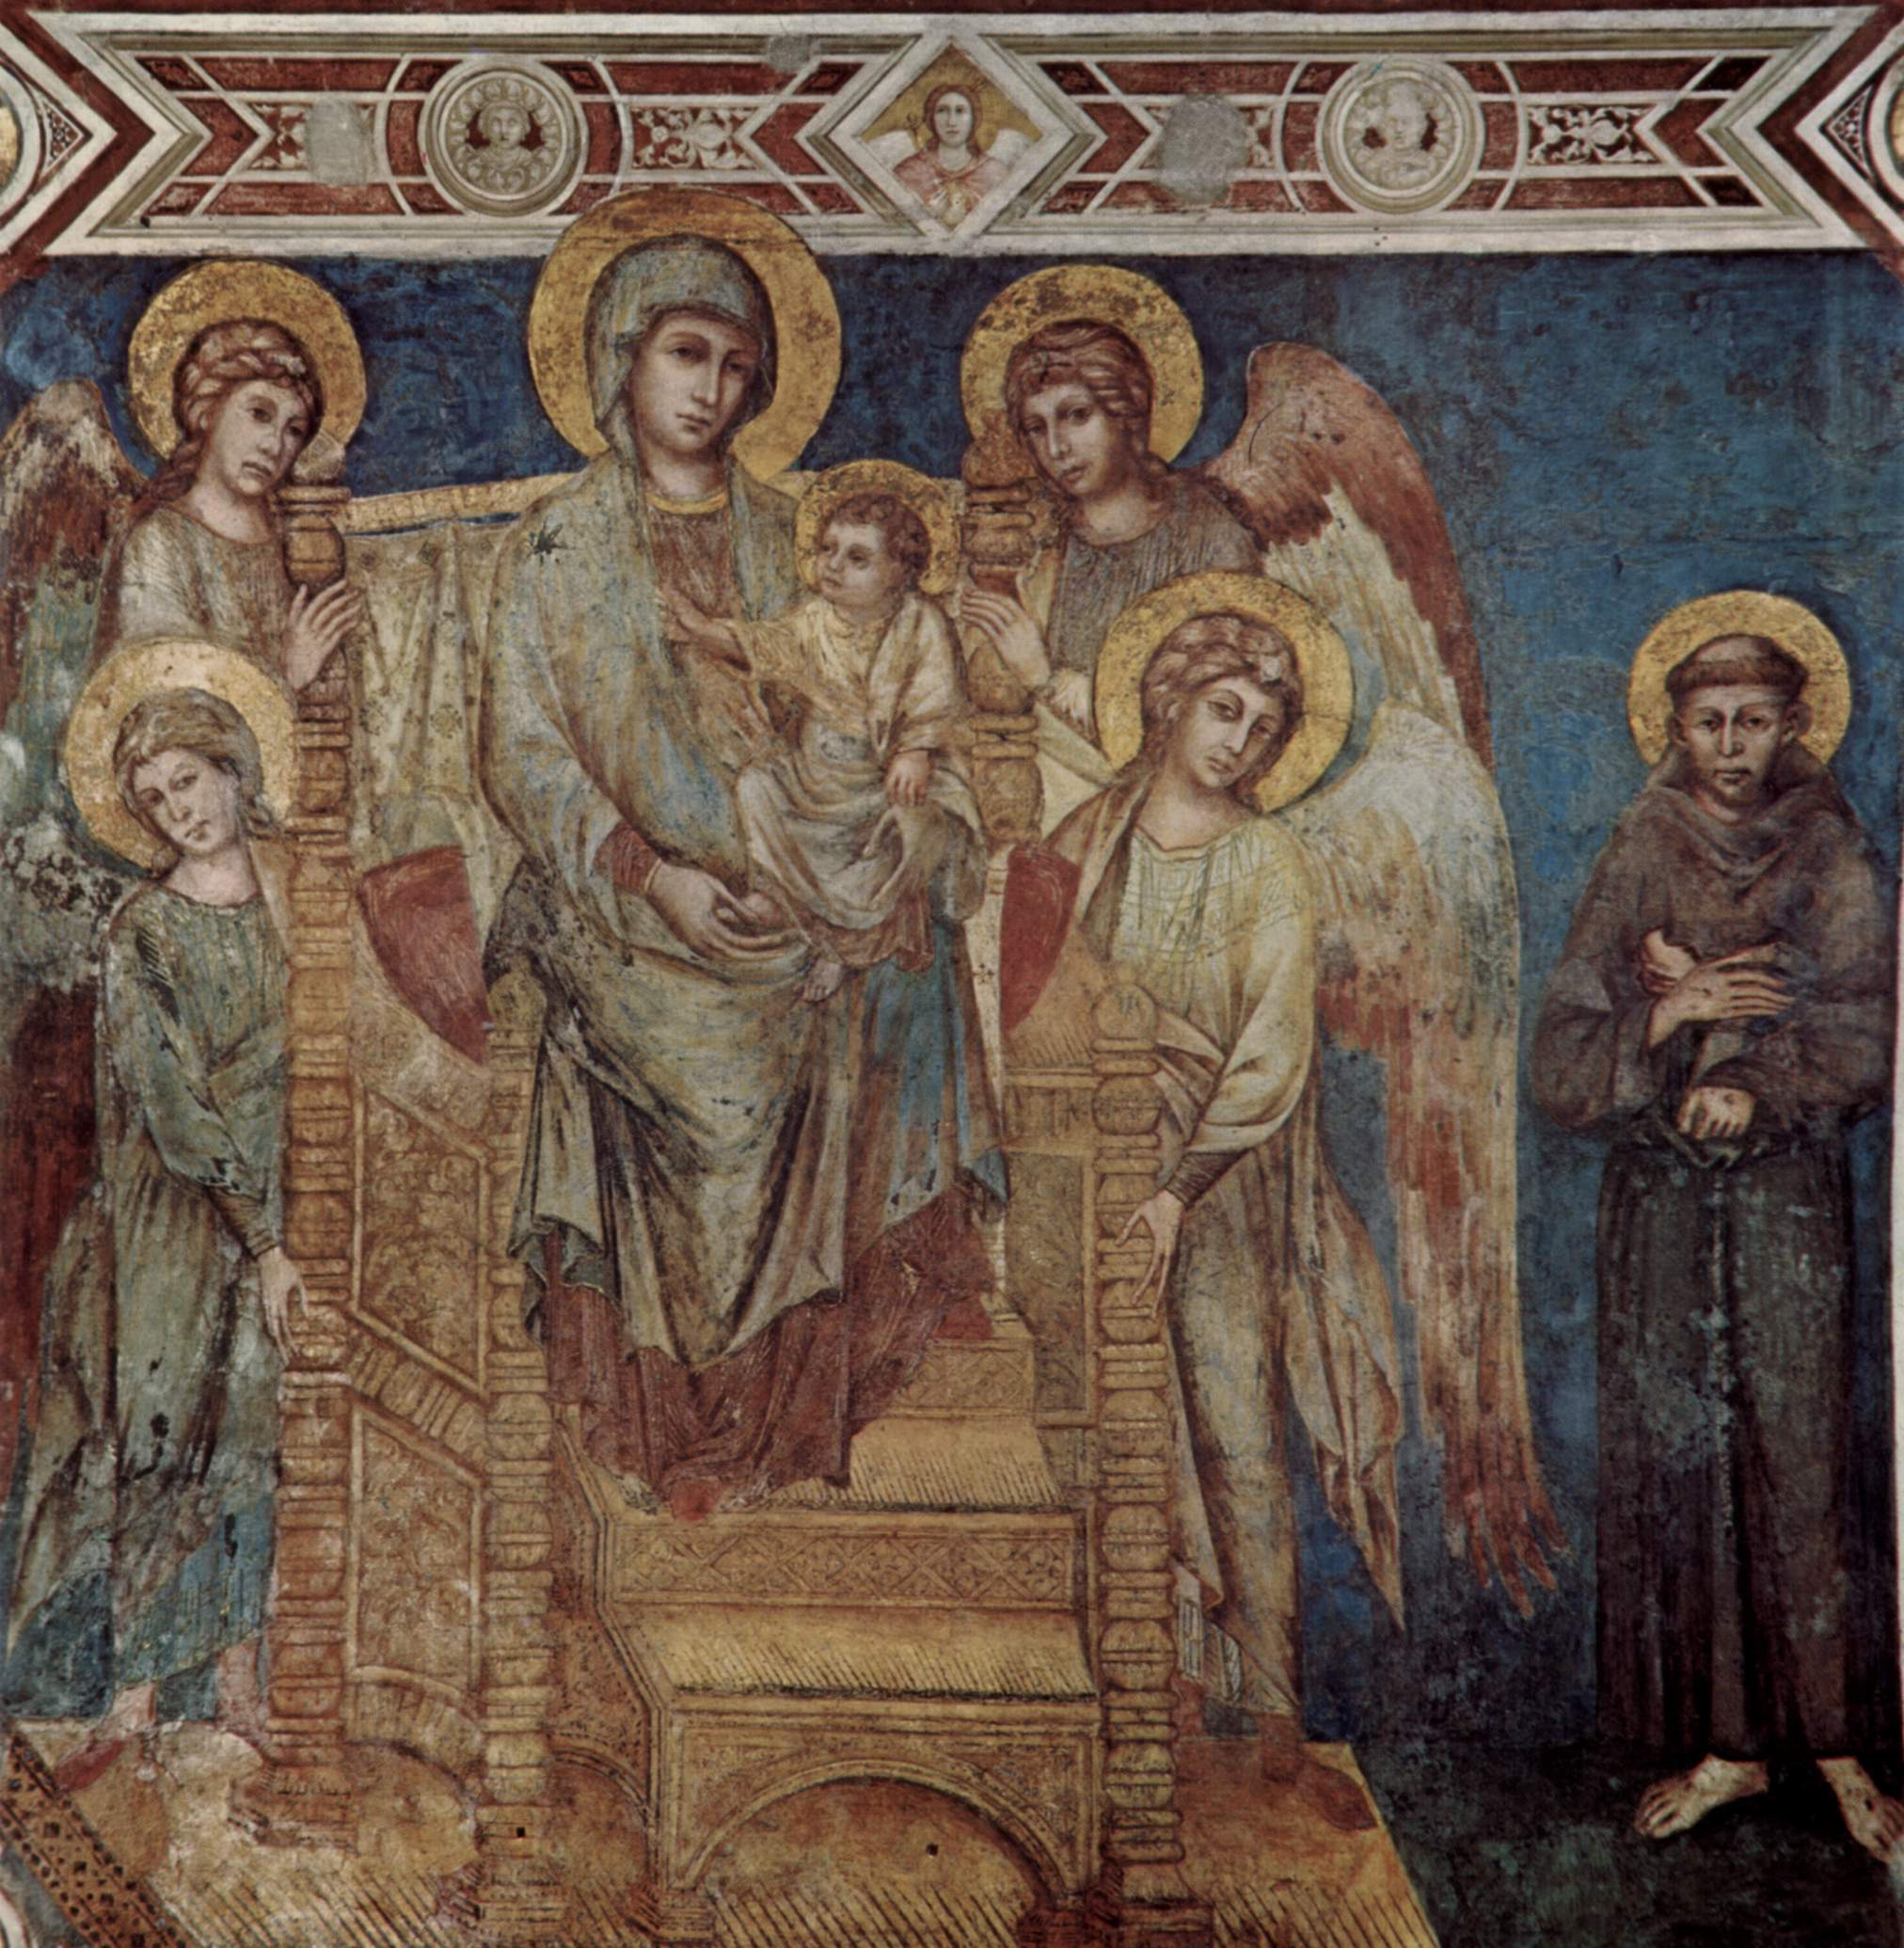 Cuadros De La Edad Media File:cimabue 018.jpg - Wikimedia Commons